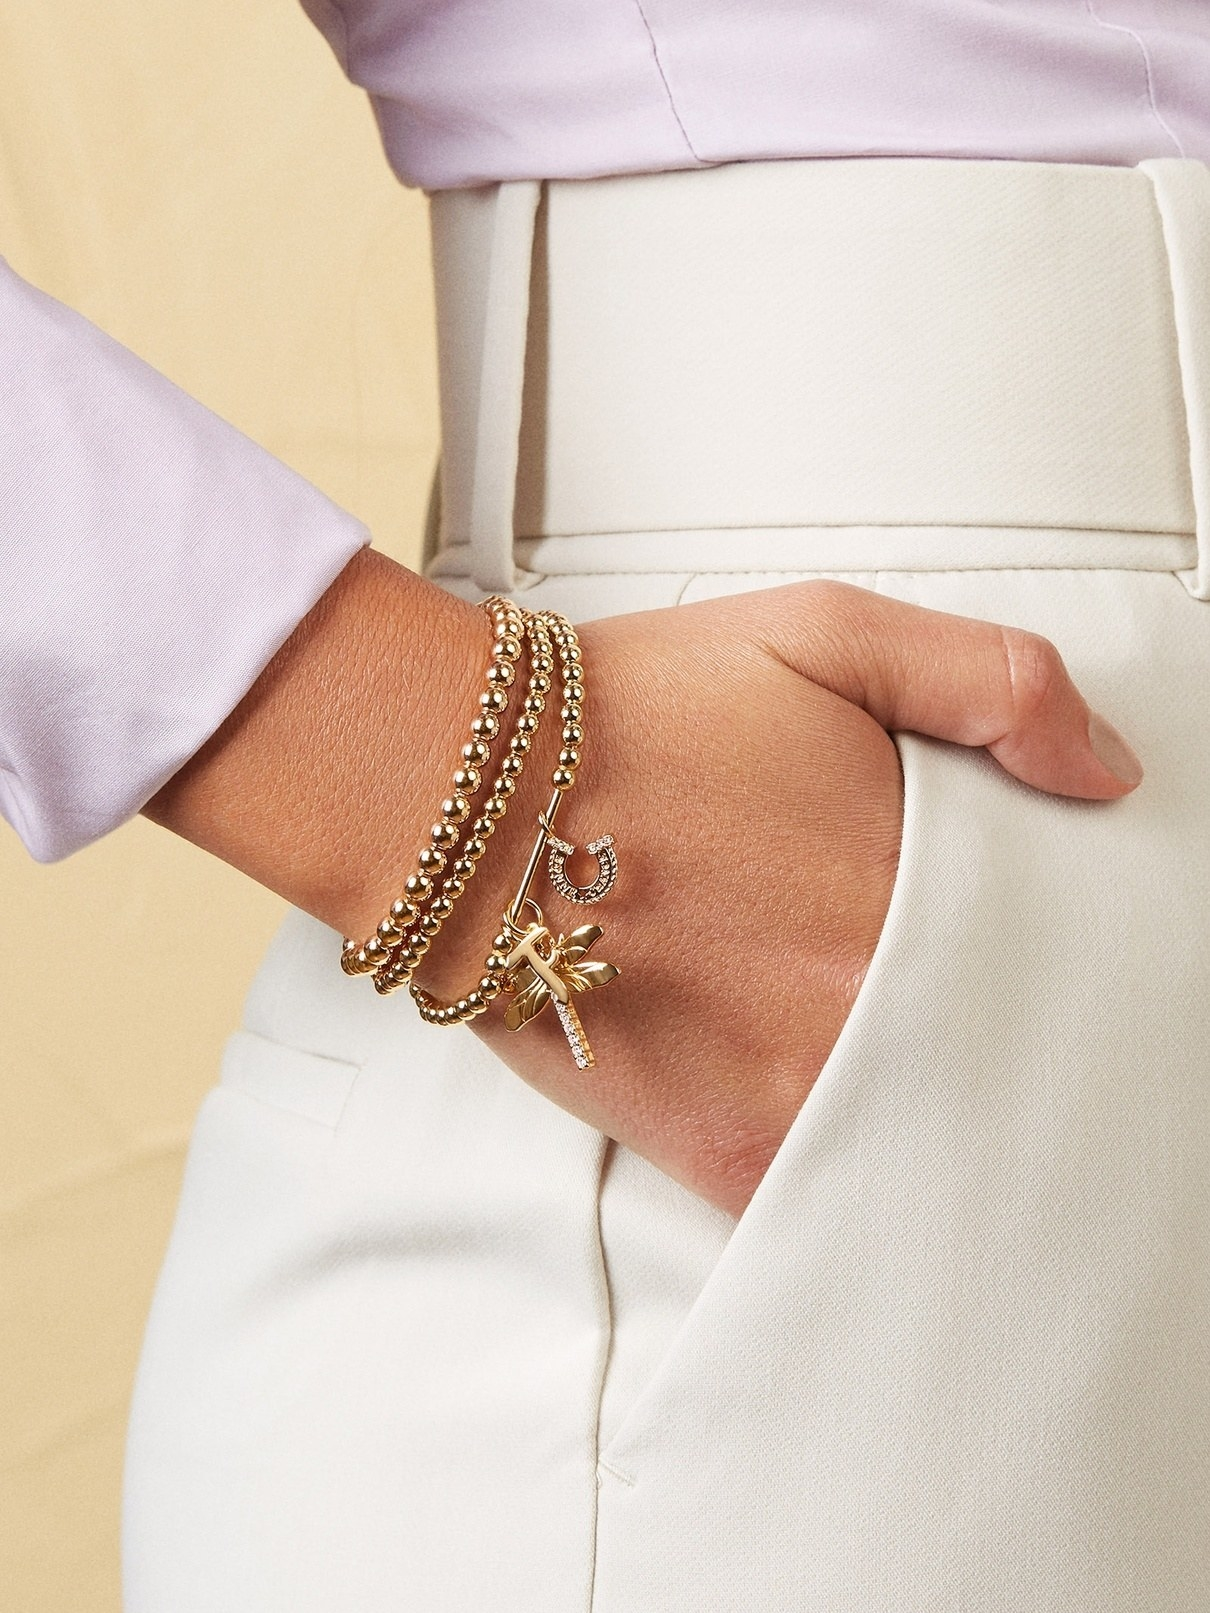 model wearing layered gold bracelet with charms